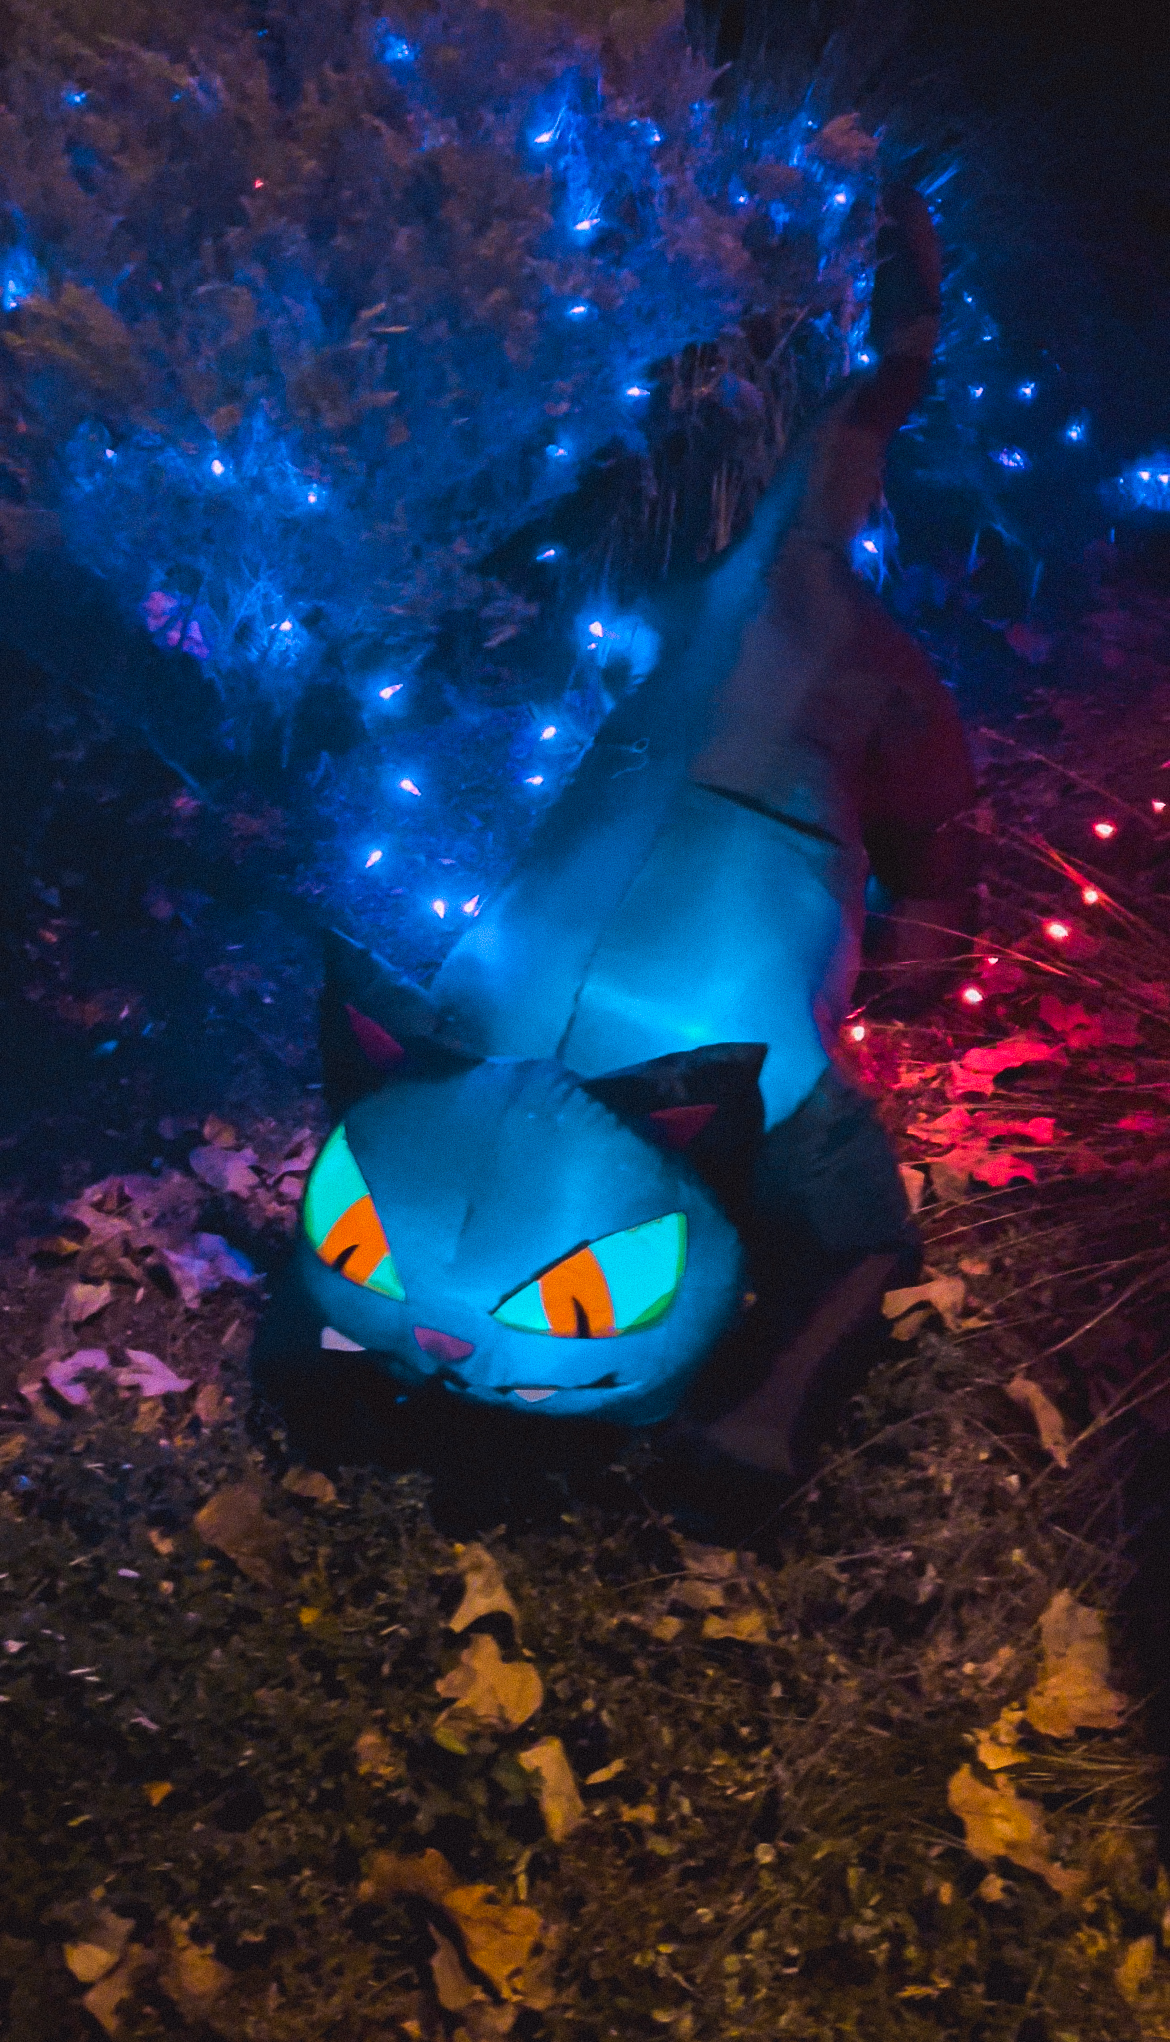 These Halloween inflatables give your yard all the spooky vibes - with little to no work or set up required. Happy haunting!